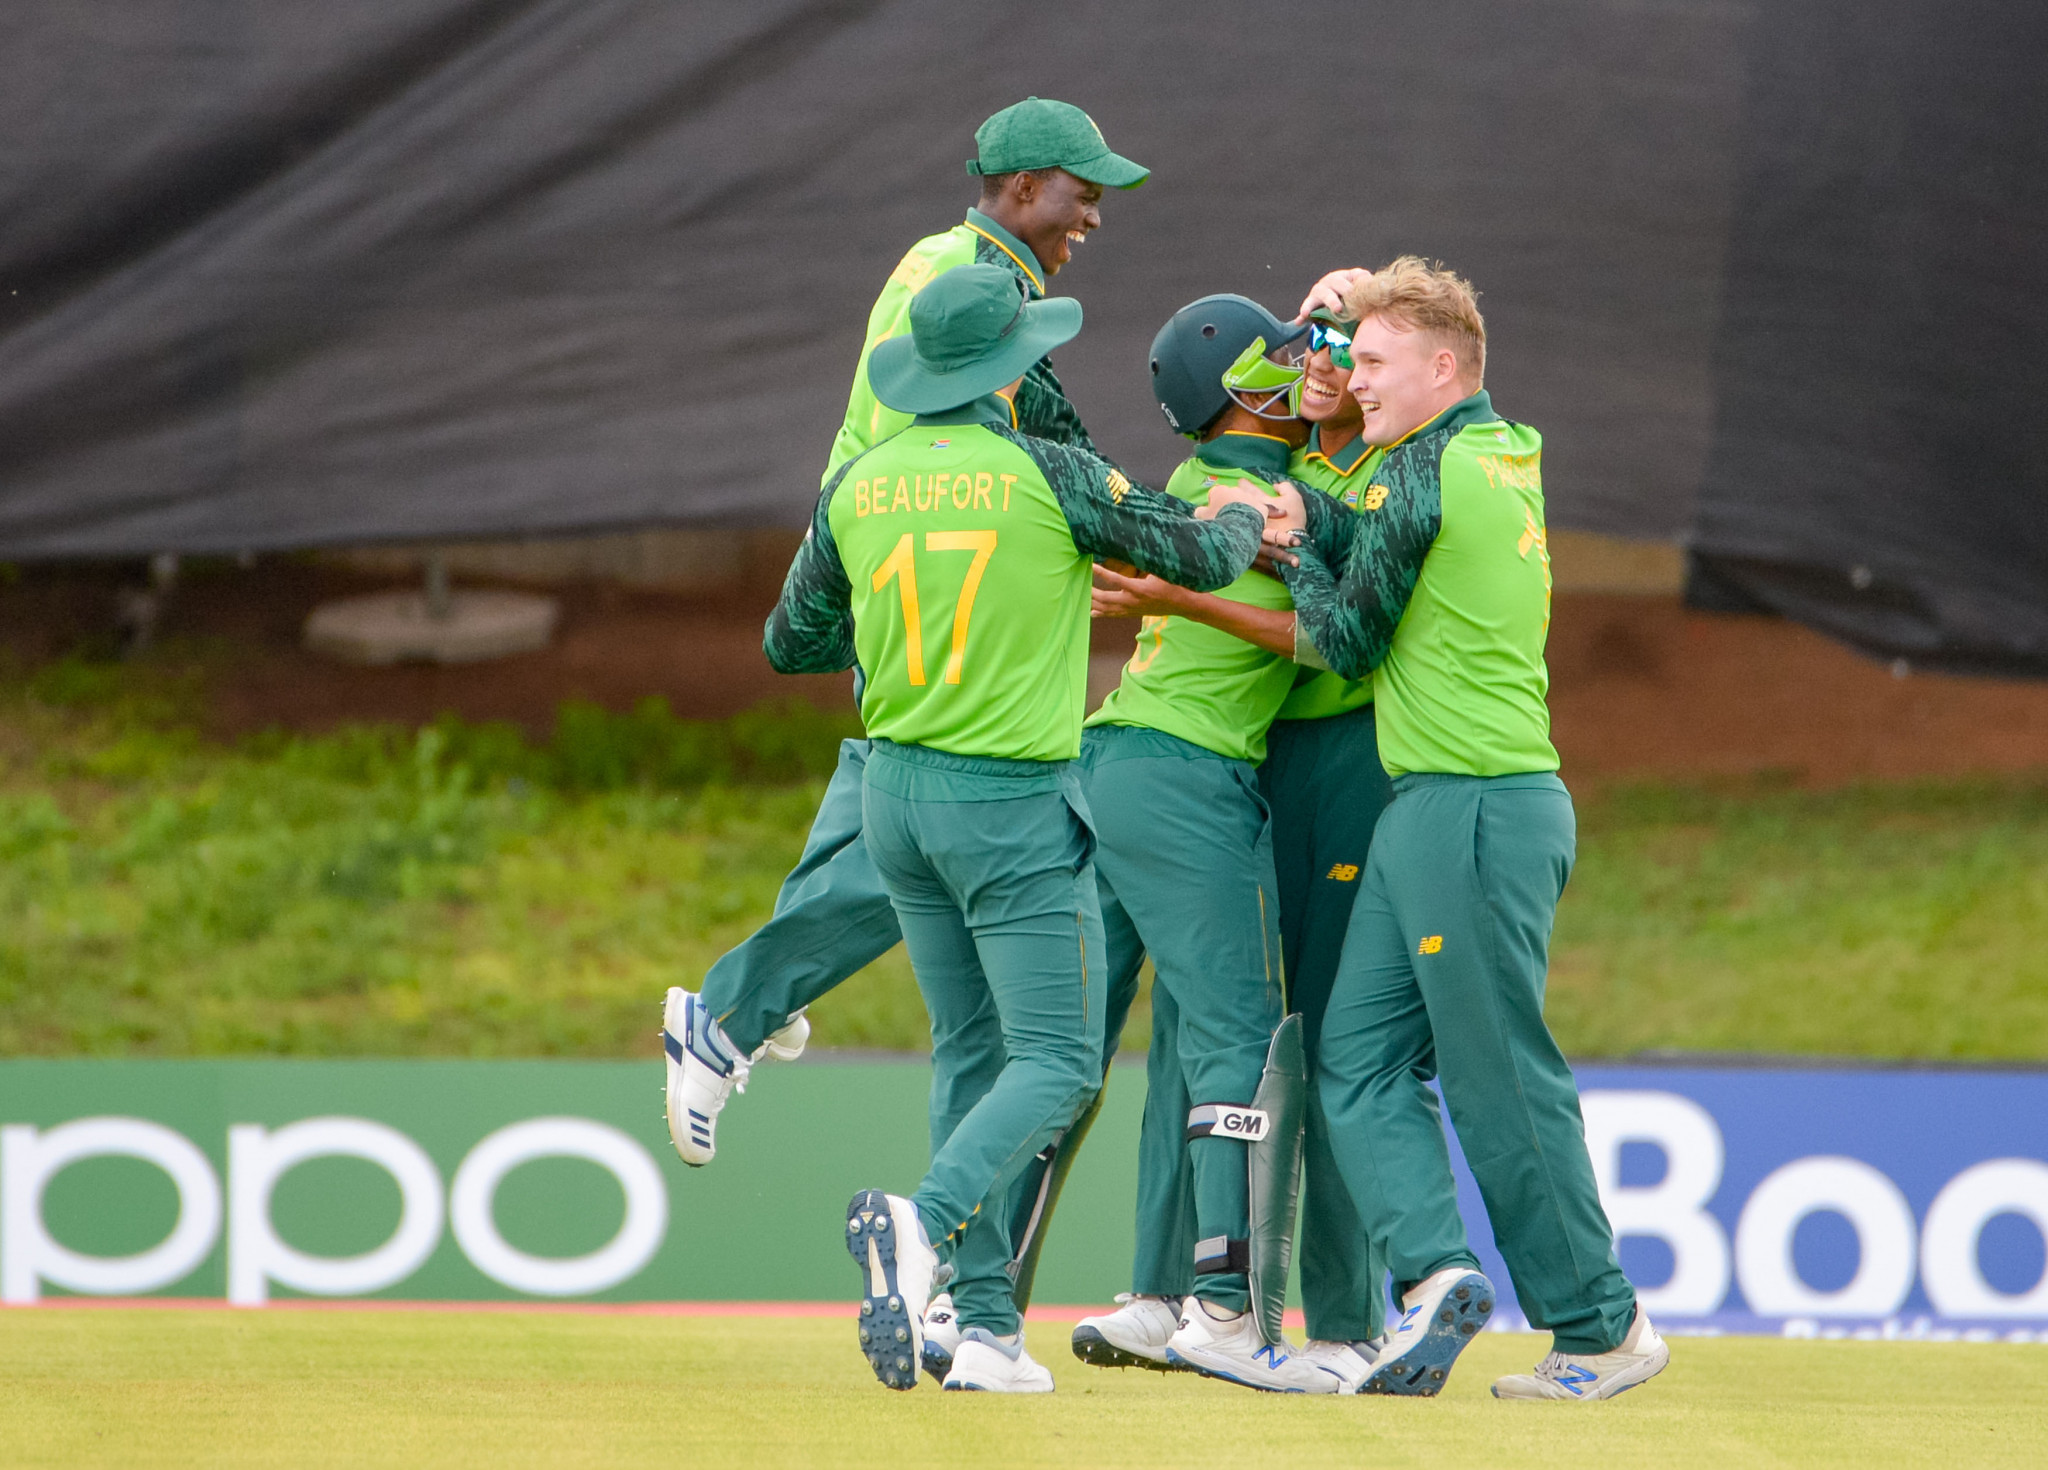 Hosts South Africa through to U-19 Cricket World Cup quarter-finals with UAE win